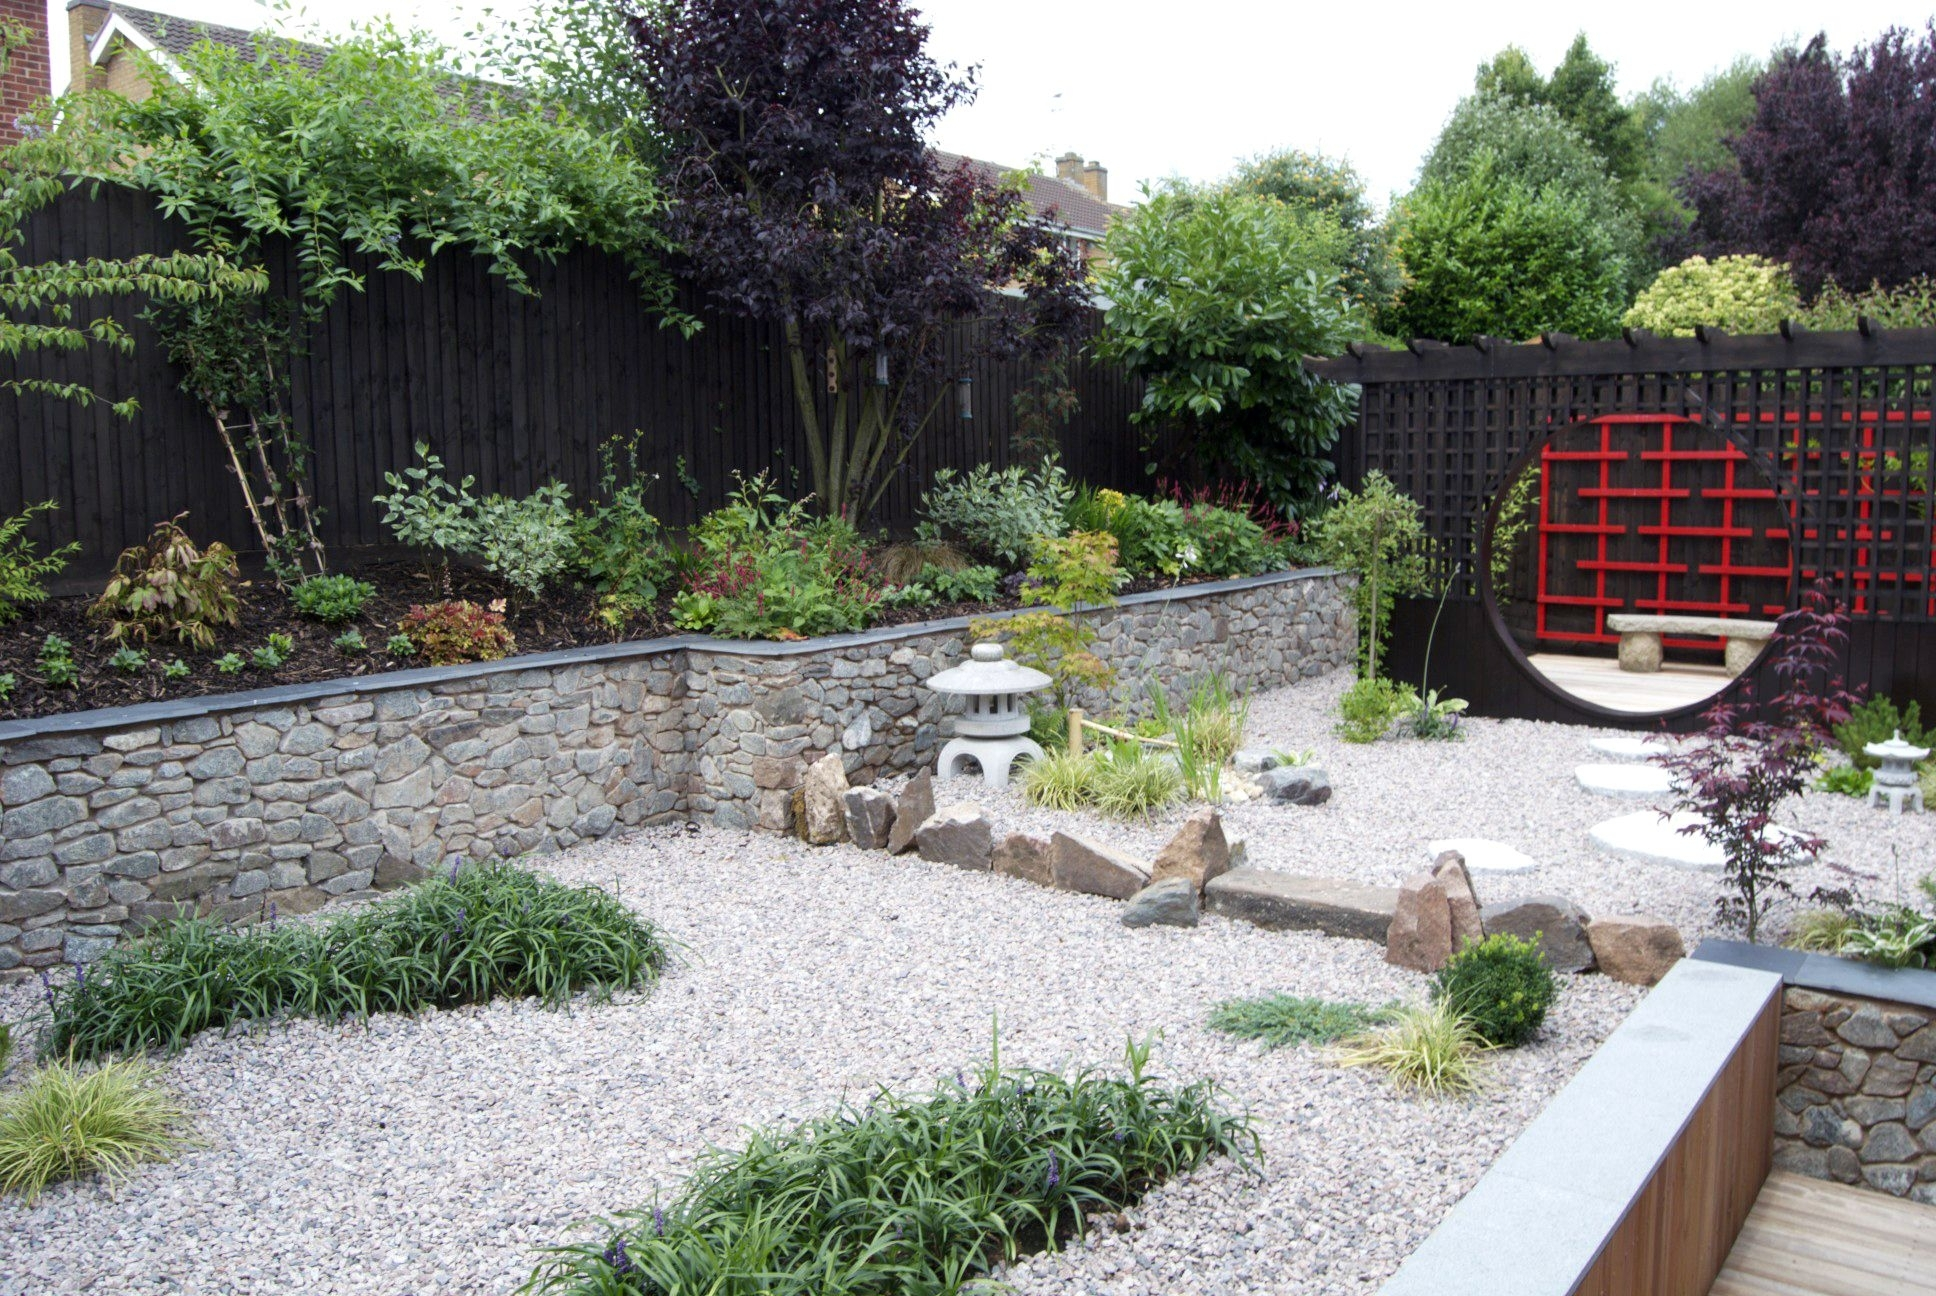 Lawn & Garden : Japanese Garden Designs For Small Spaces Then with regard to Japanese Garden Design